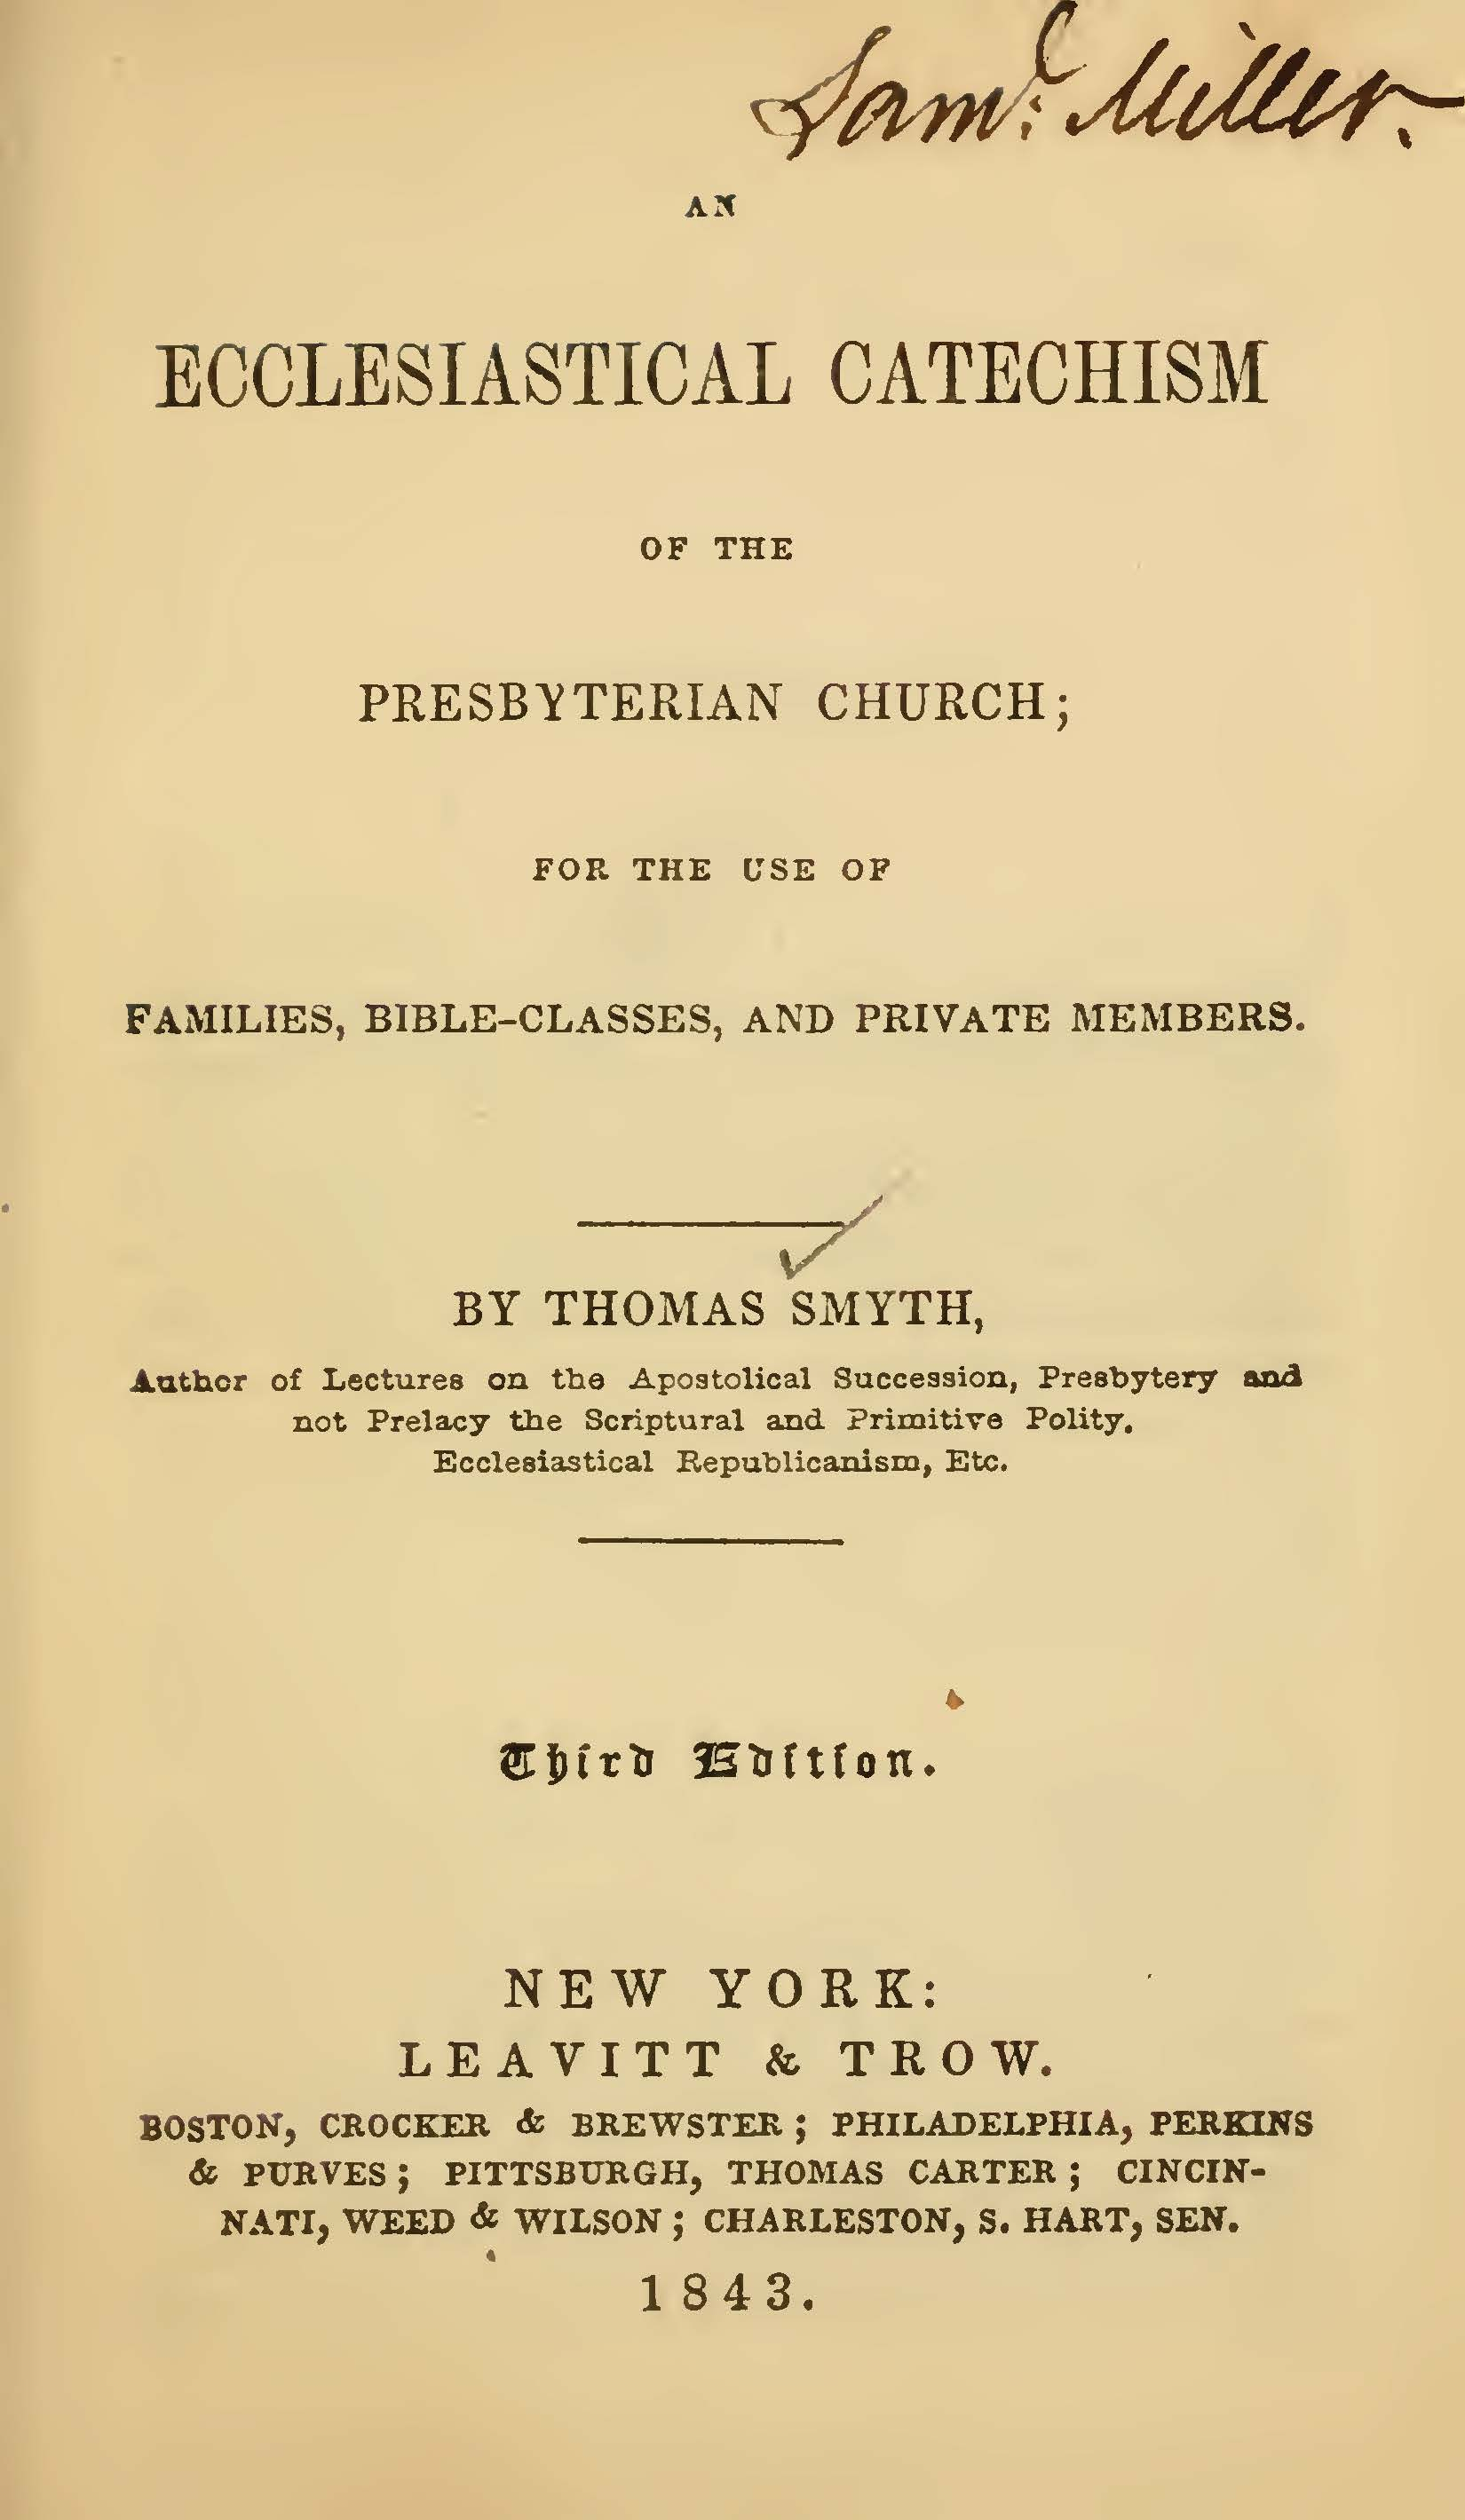 Smyth, Thomas, An Ecclesiastical Catechism of the Presbyterian Church Title Page.jpg